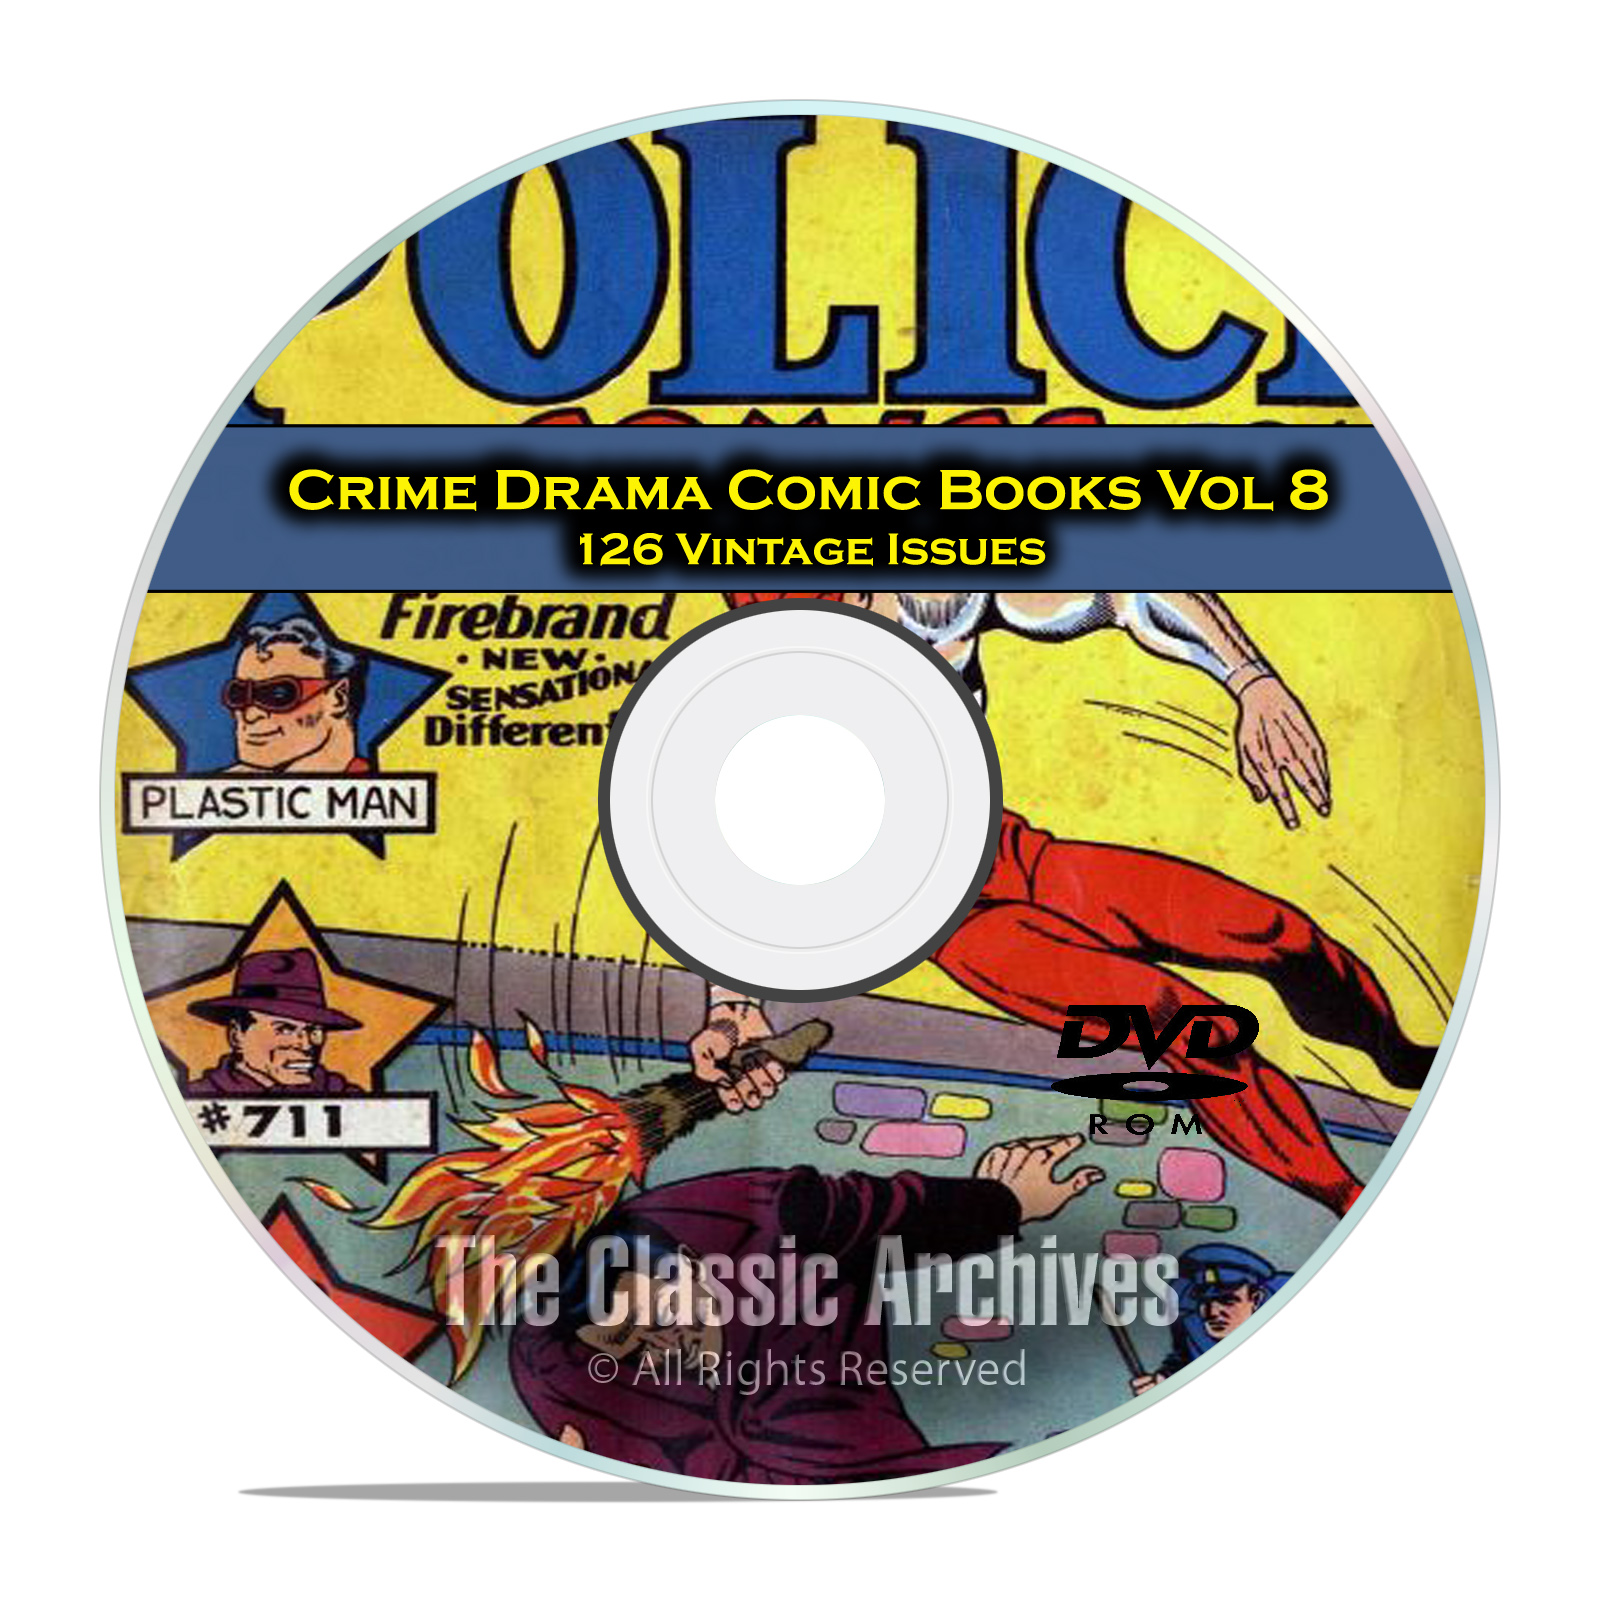 Crime Drama, Suspense, Vol 8, Police Comics 126 Issues Golden Age Comic DVD